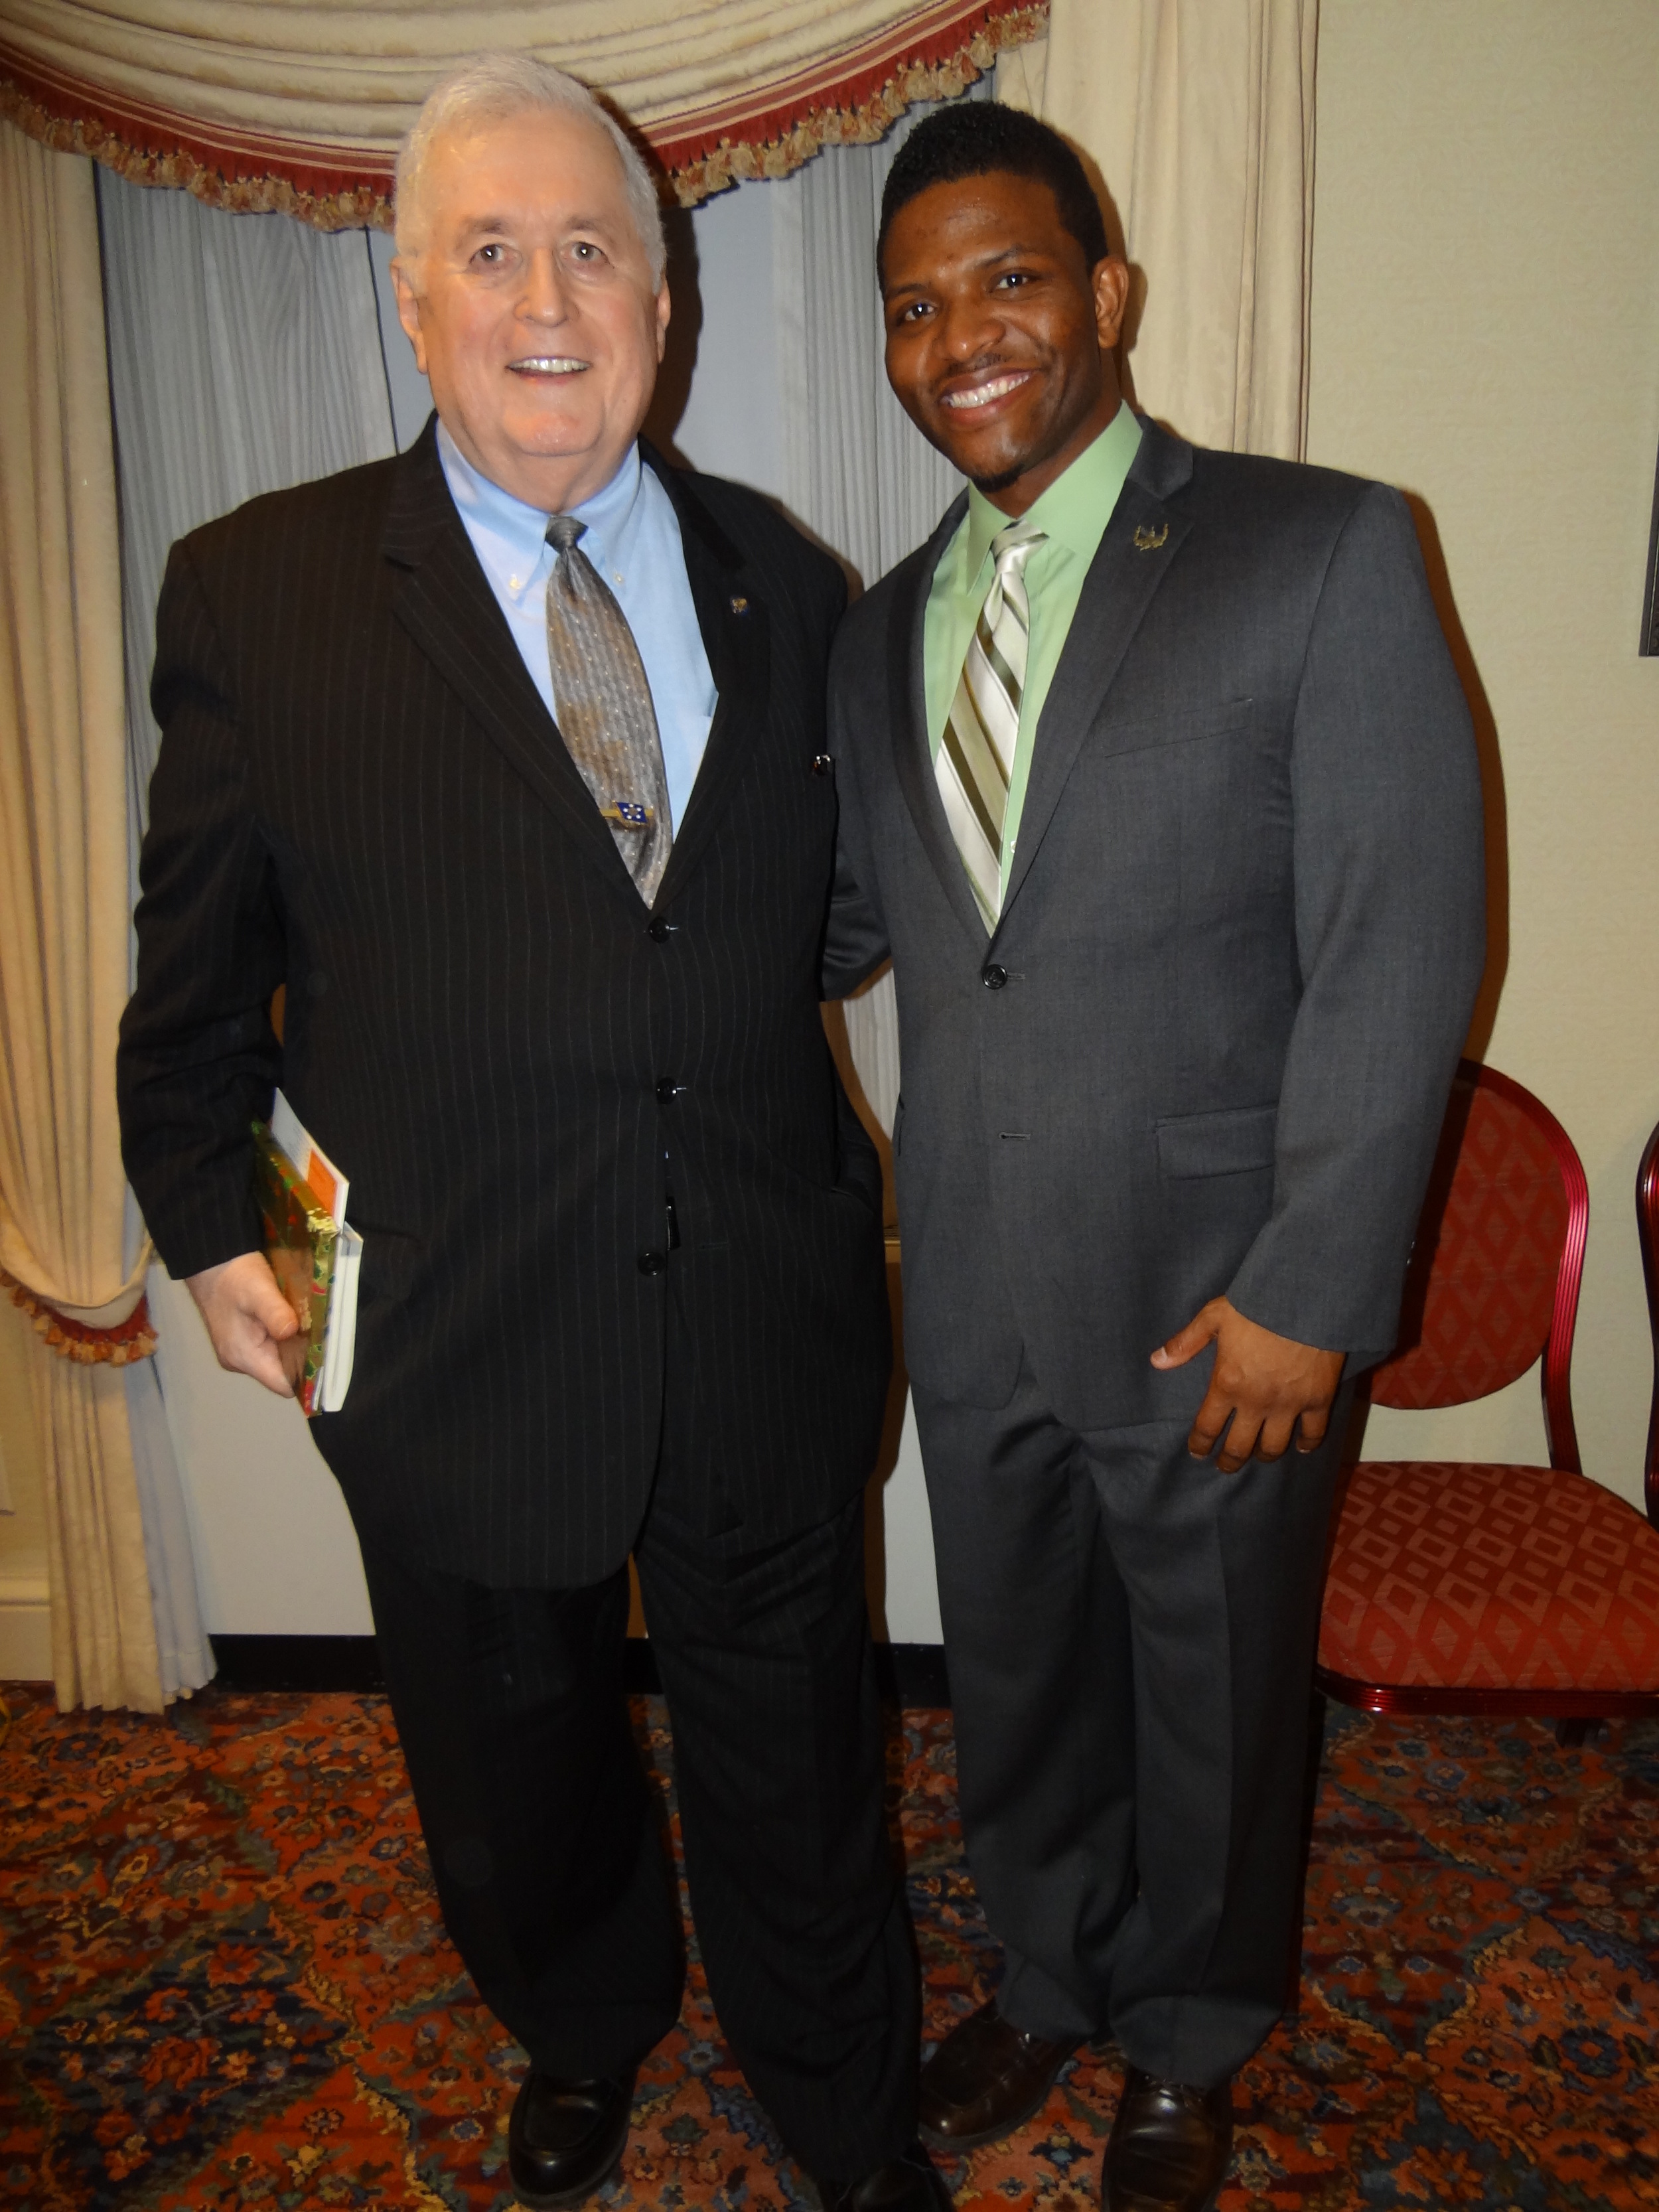 RADM Carey, Founder of the Washington Scholars, and K.N. Barrett, USMC and intern with Reserve Officers Association.